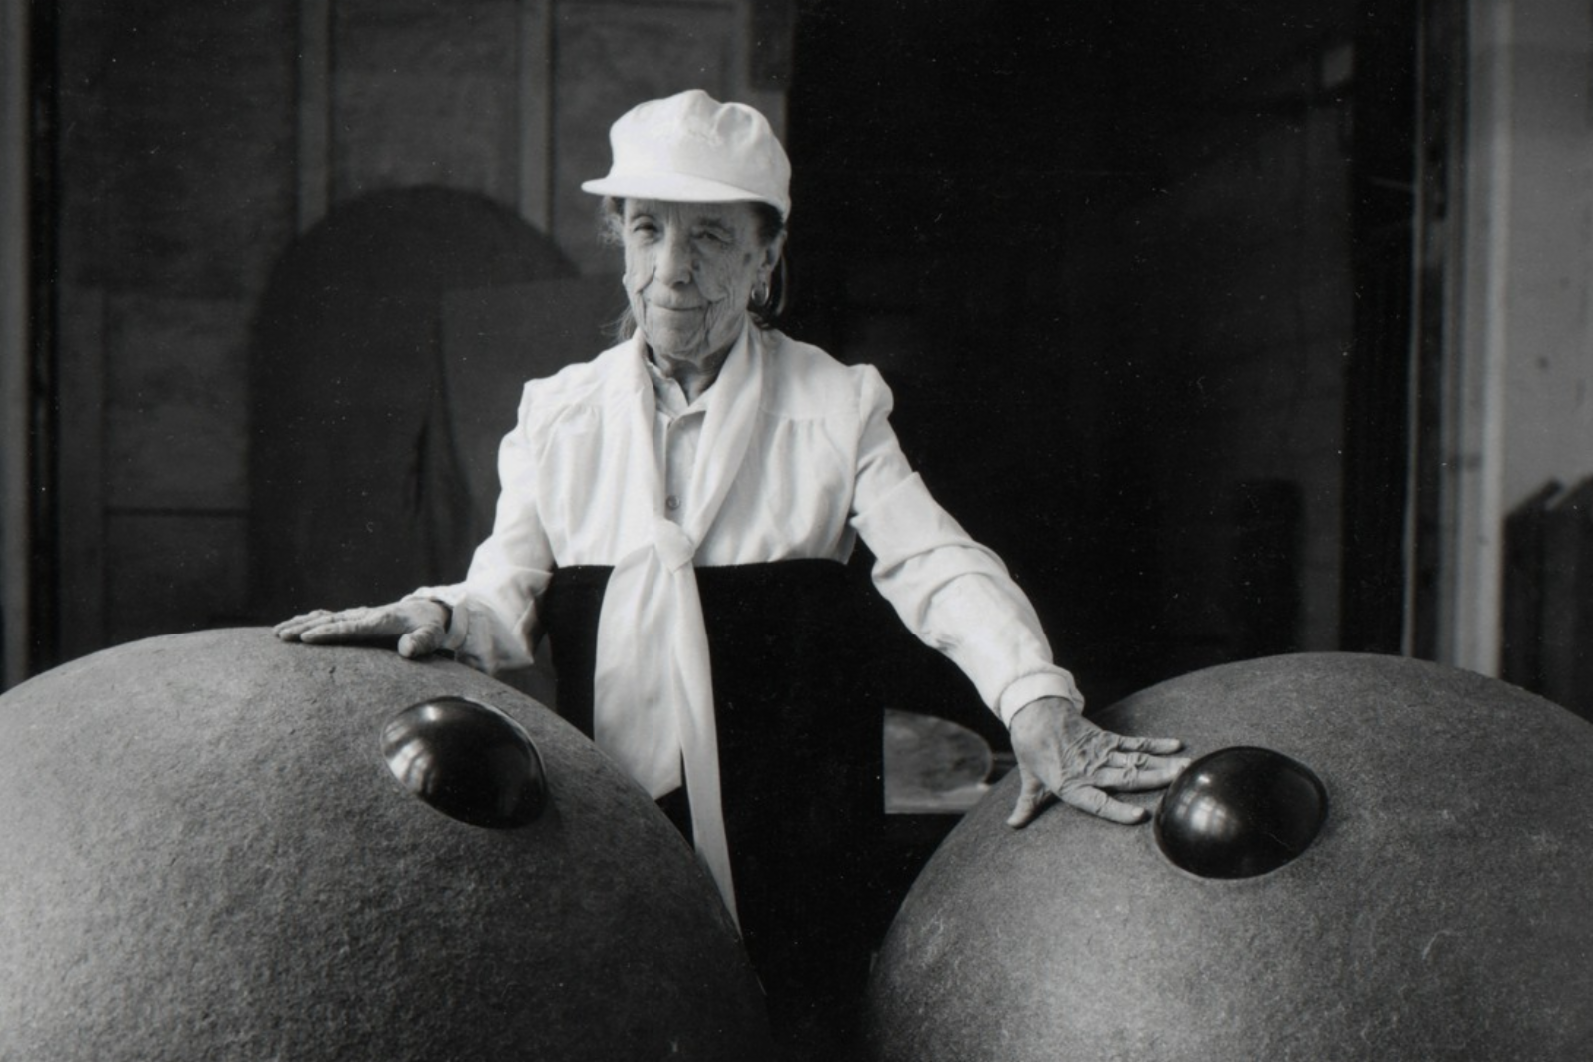 Louise Bourgeois on Finding Inspiration in Solitude